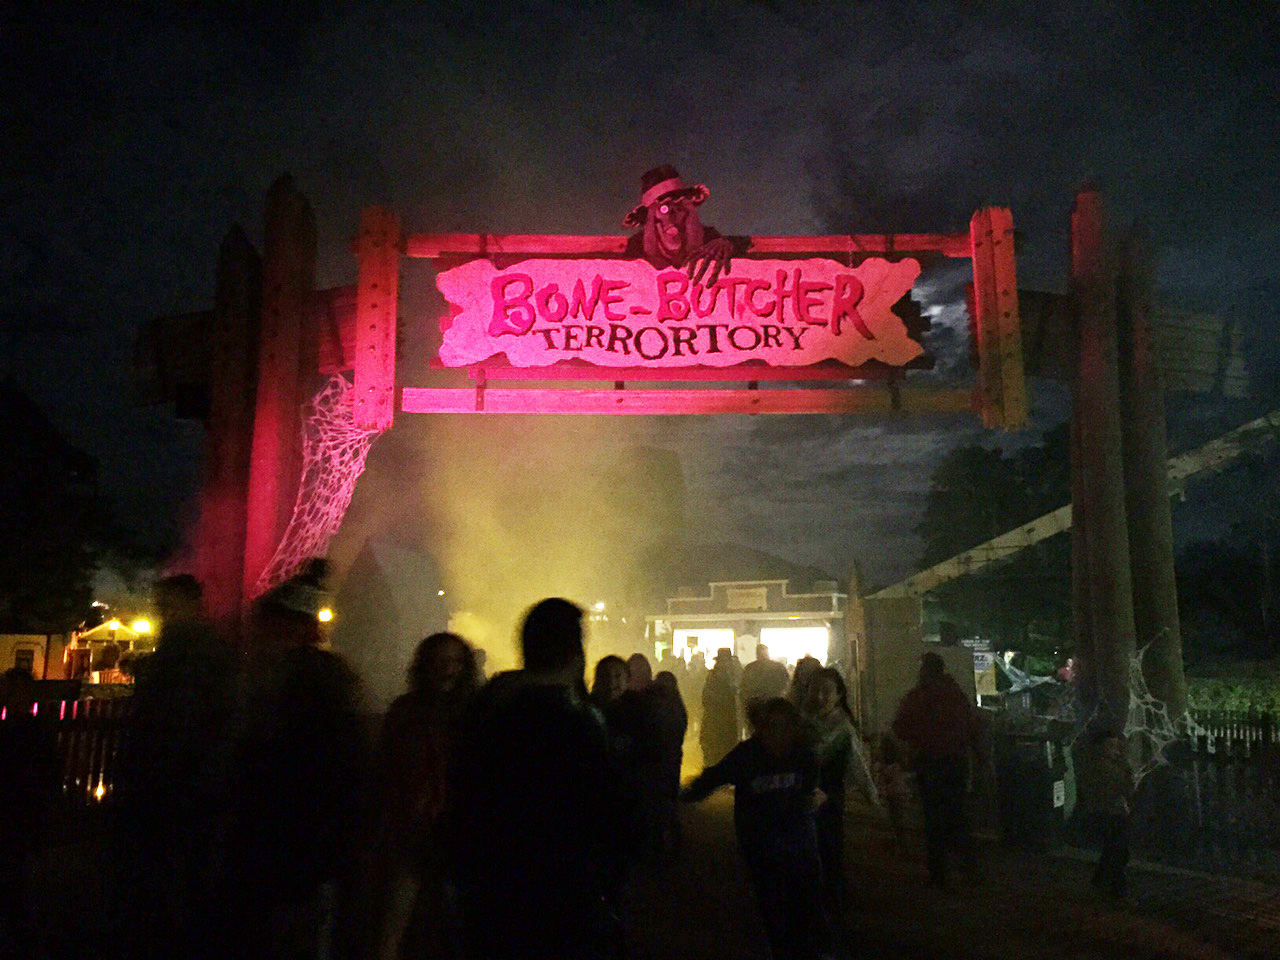 Six flags fright fest dates in Brisbane